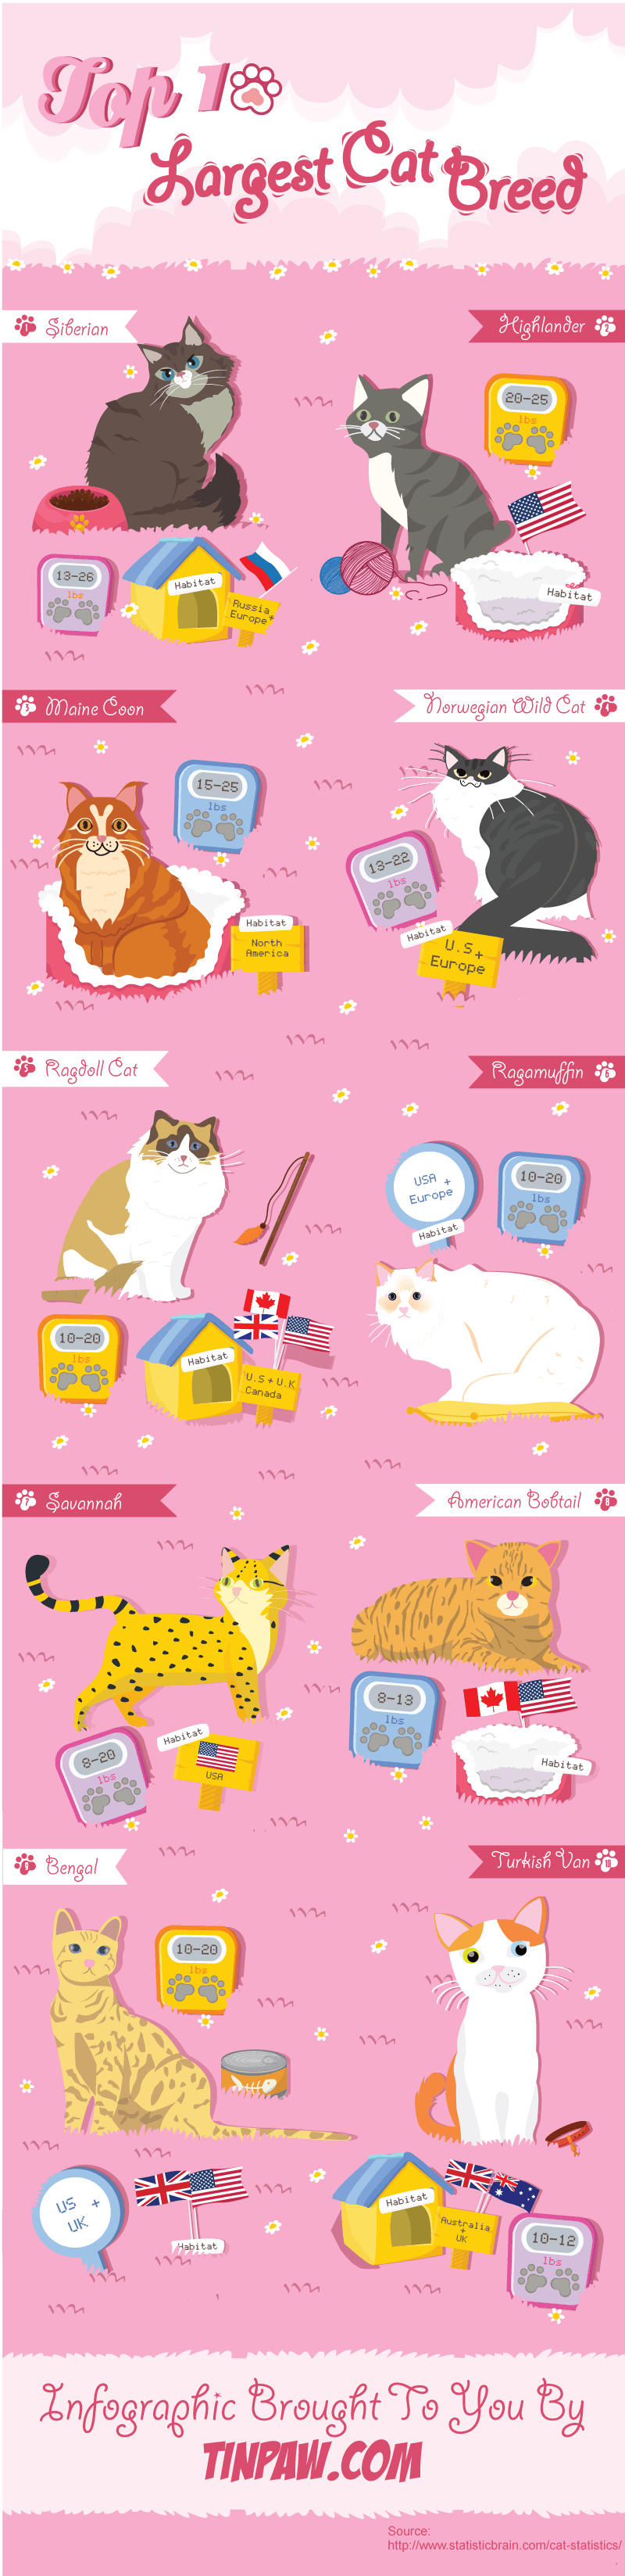 infographic-Top 10 largest cat breeds